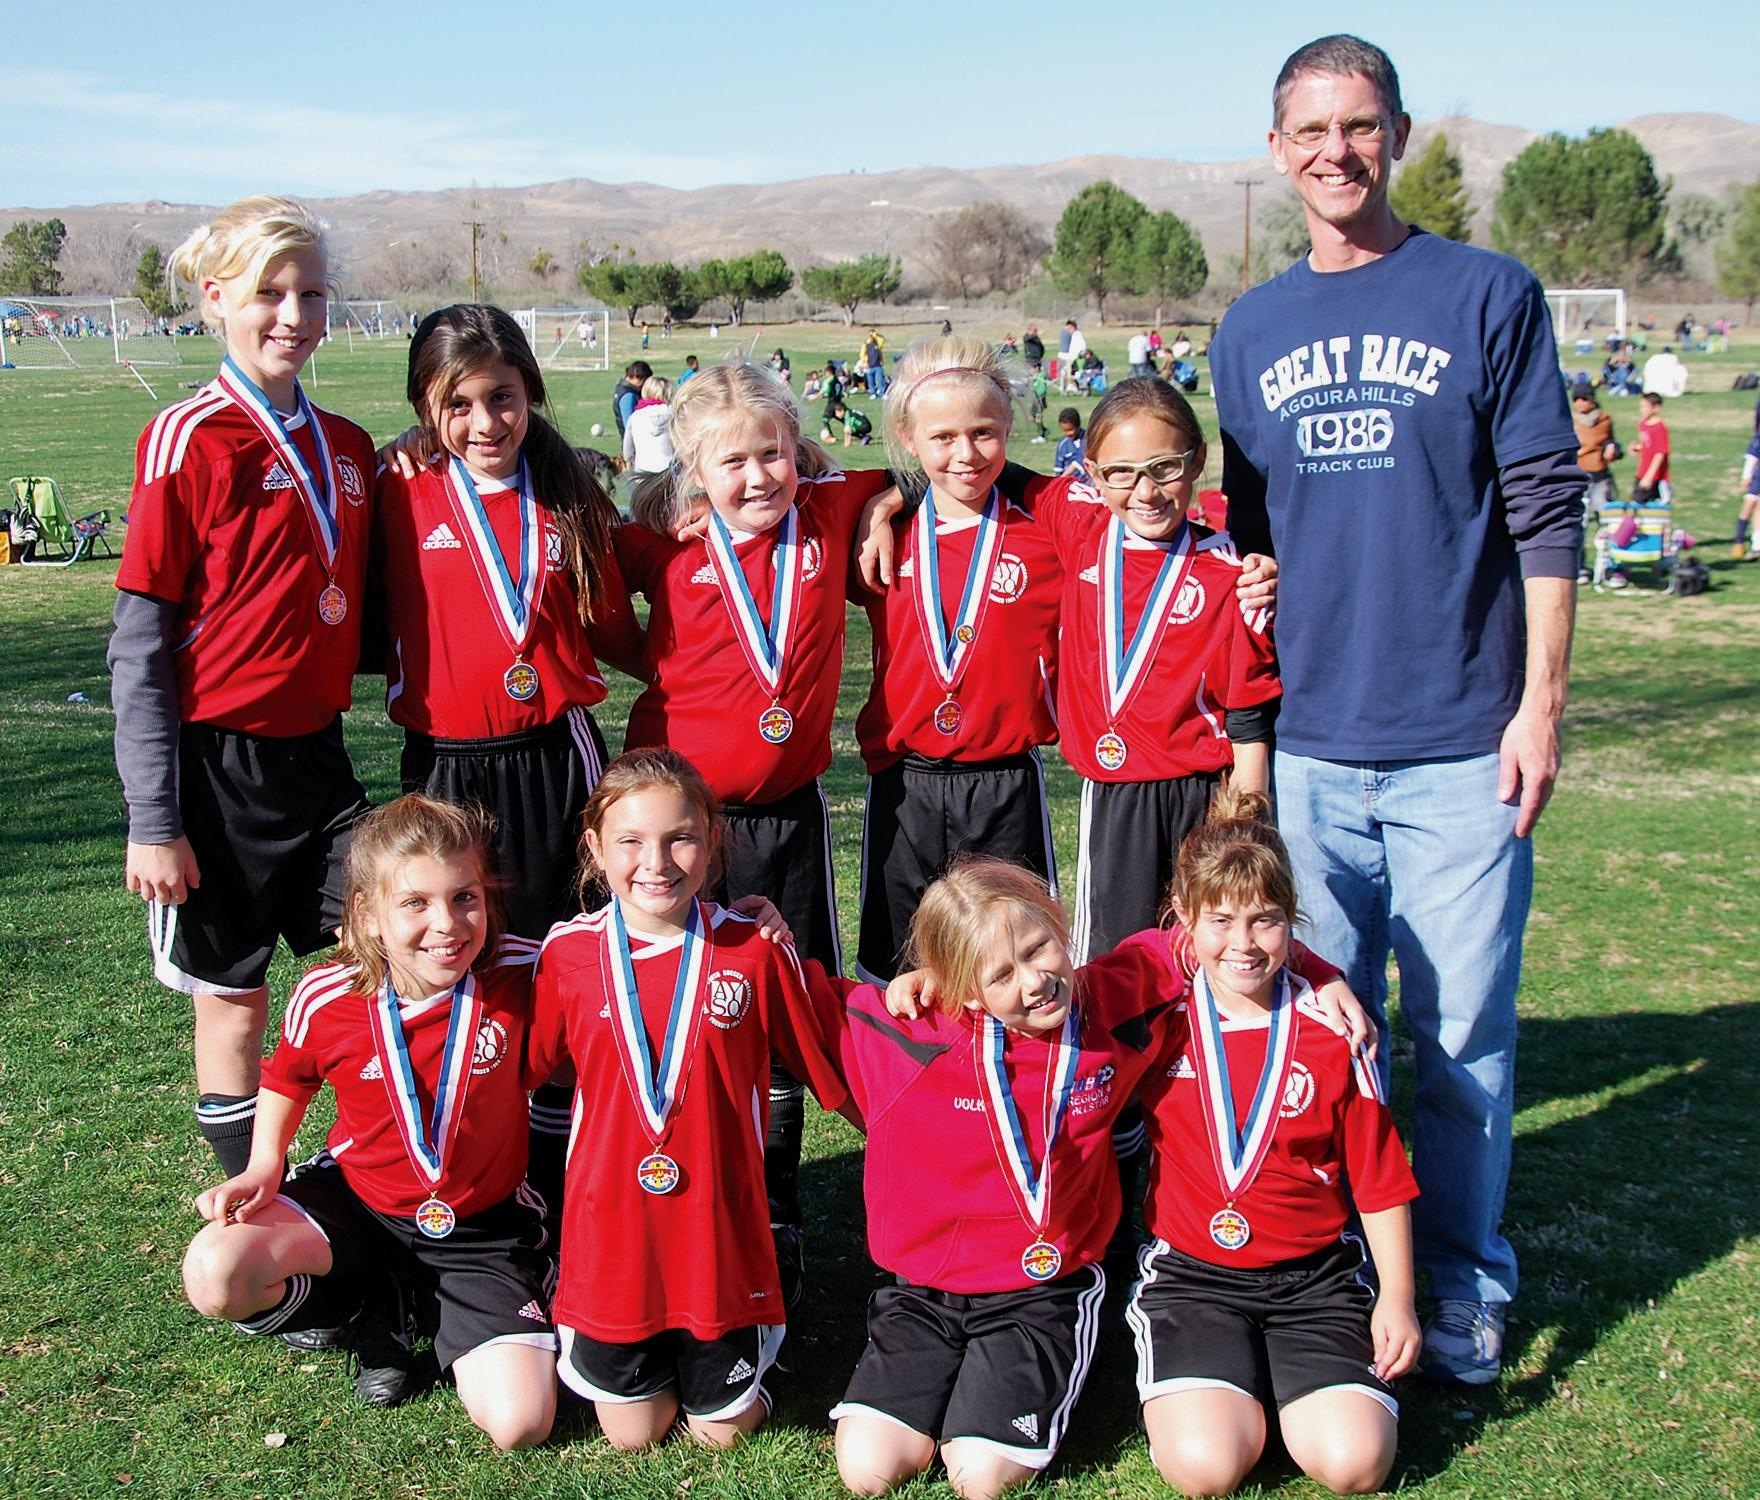 TASTE THE VICTORY—The AYSO Regional 4 U10 All- Stars, Honey Badgers, took first place in the Directors Cup Tournament in Bakersfield. Back row, from left: Caitlyn Danovich, Penny Smith, Aubrey Billig, Marley Volk, Malia Cohen and Coach Ted Volk. Front row: Carly Fernandez, Julia Dinerman, Noa Volk and Phoebe Reed.